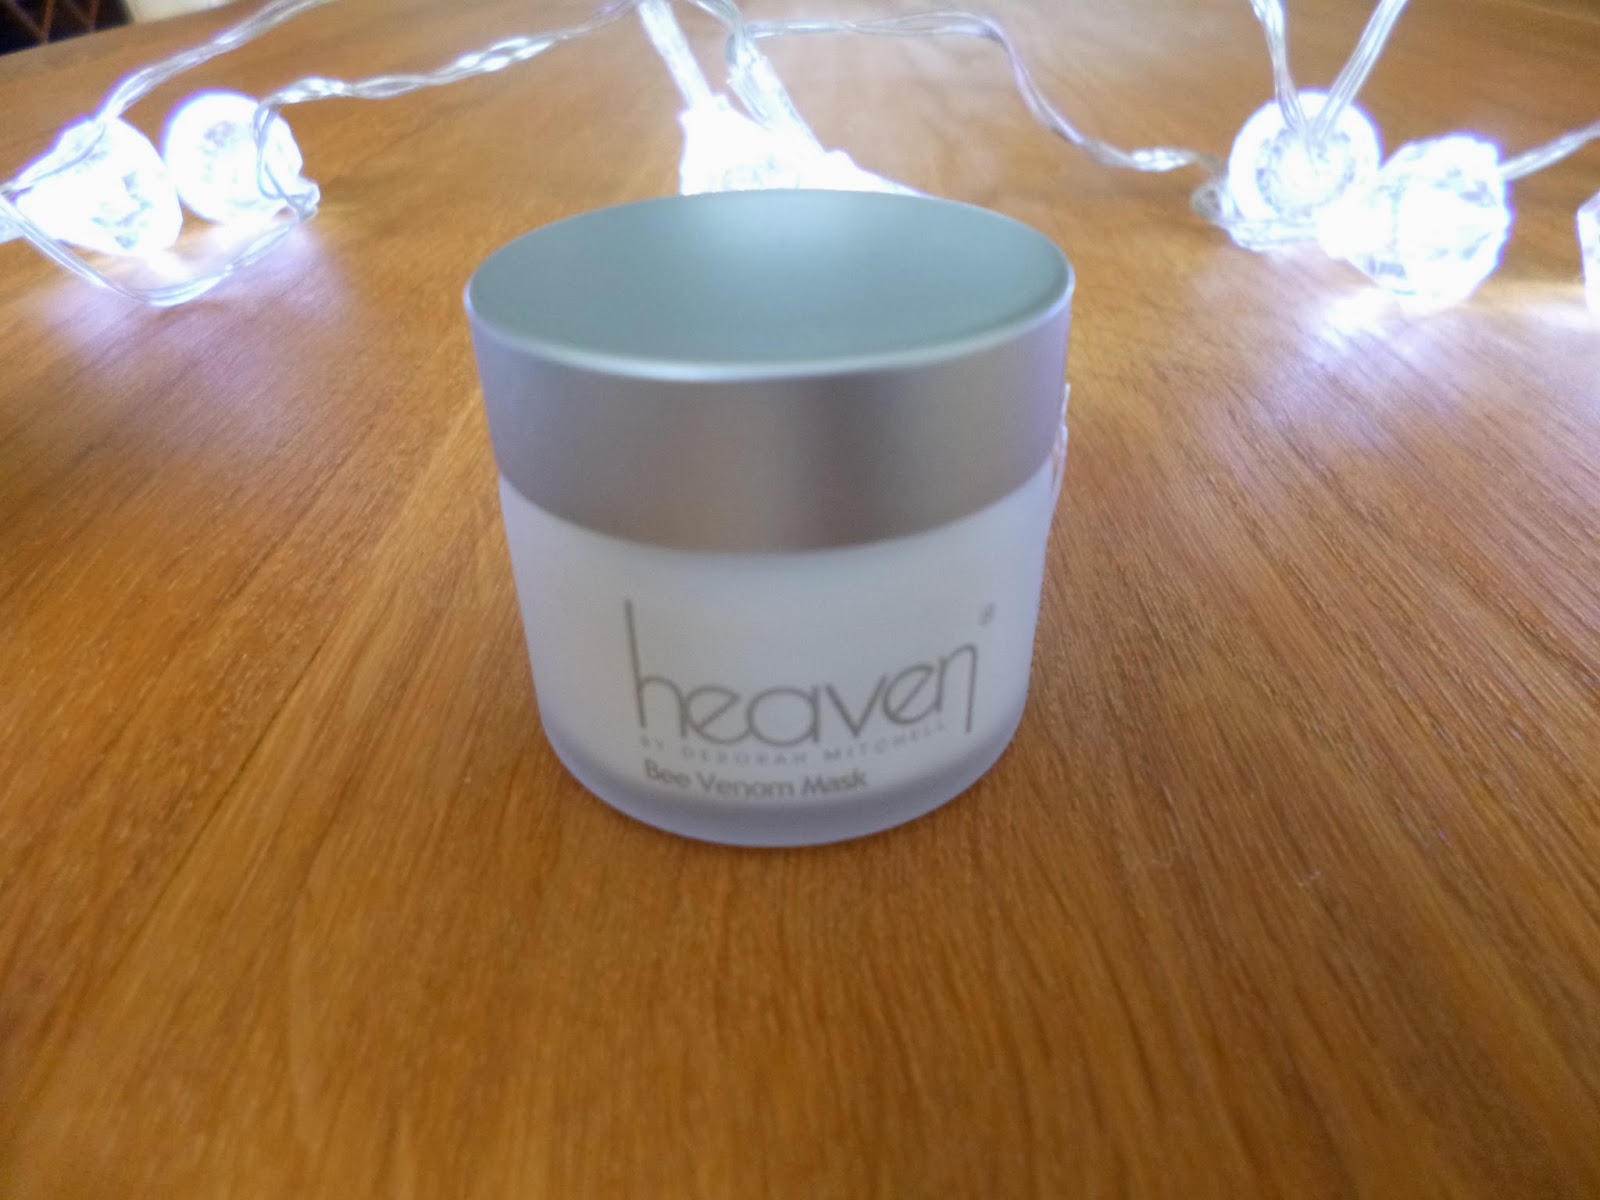 Heaven-skincare-bee-venom-face-mask